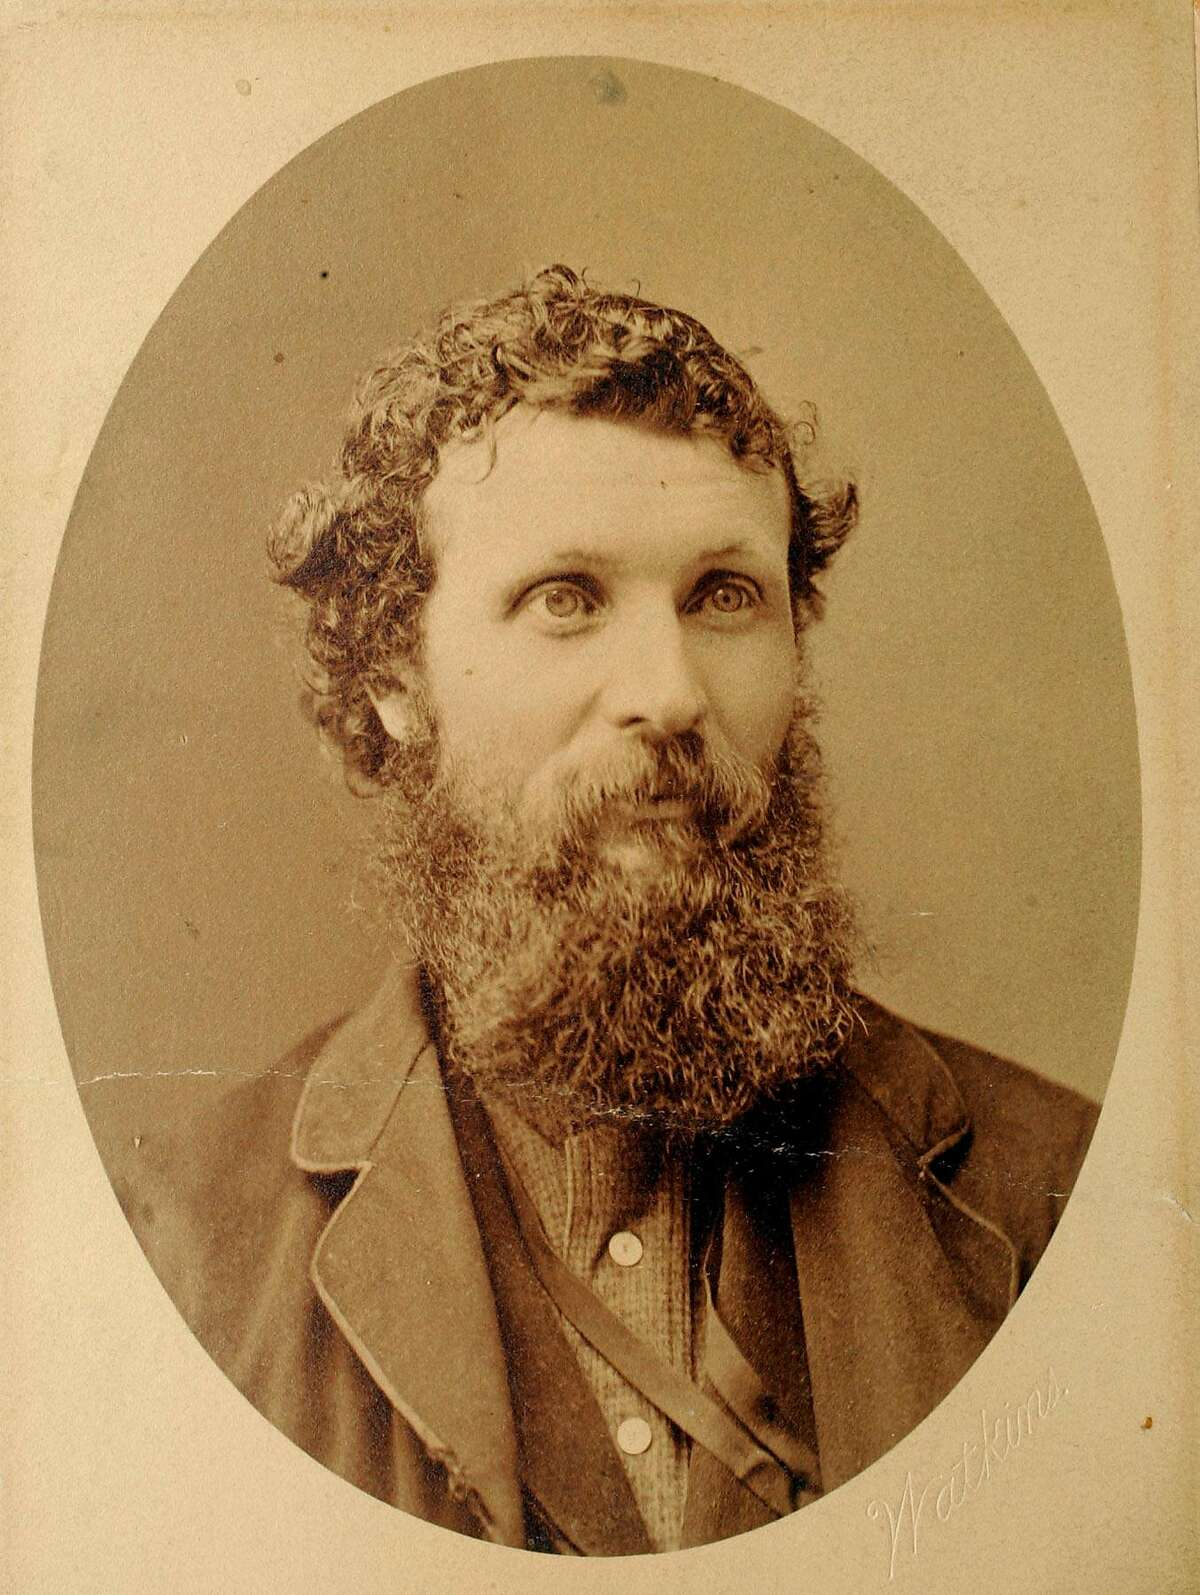 John Muir is shown in this circa 1860s image issued by the Wisconsin Historical Society. The society is publishing a rare collection of letters written by Muir on the society's Web site. The letters span more than 50 years of Muir's life, documenting in his own words how he evolved from a strict Calvinist at the University of Wisconsin-Madison to a mountain-climbing, tree-hugging advocate for all things nature. (AP Photo/Wisconsin Historical Society)